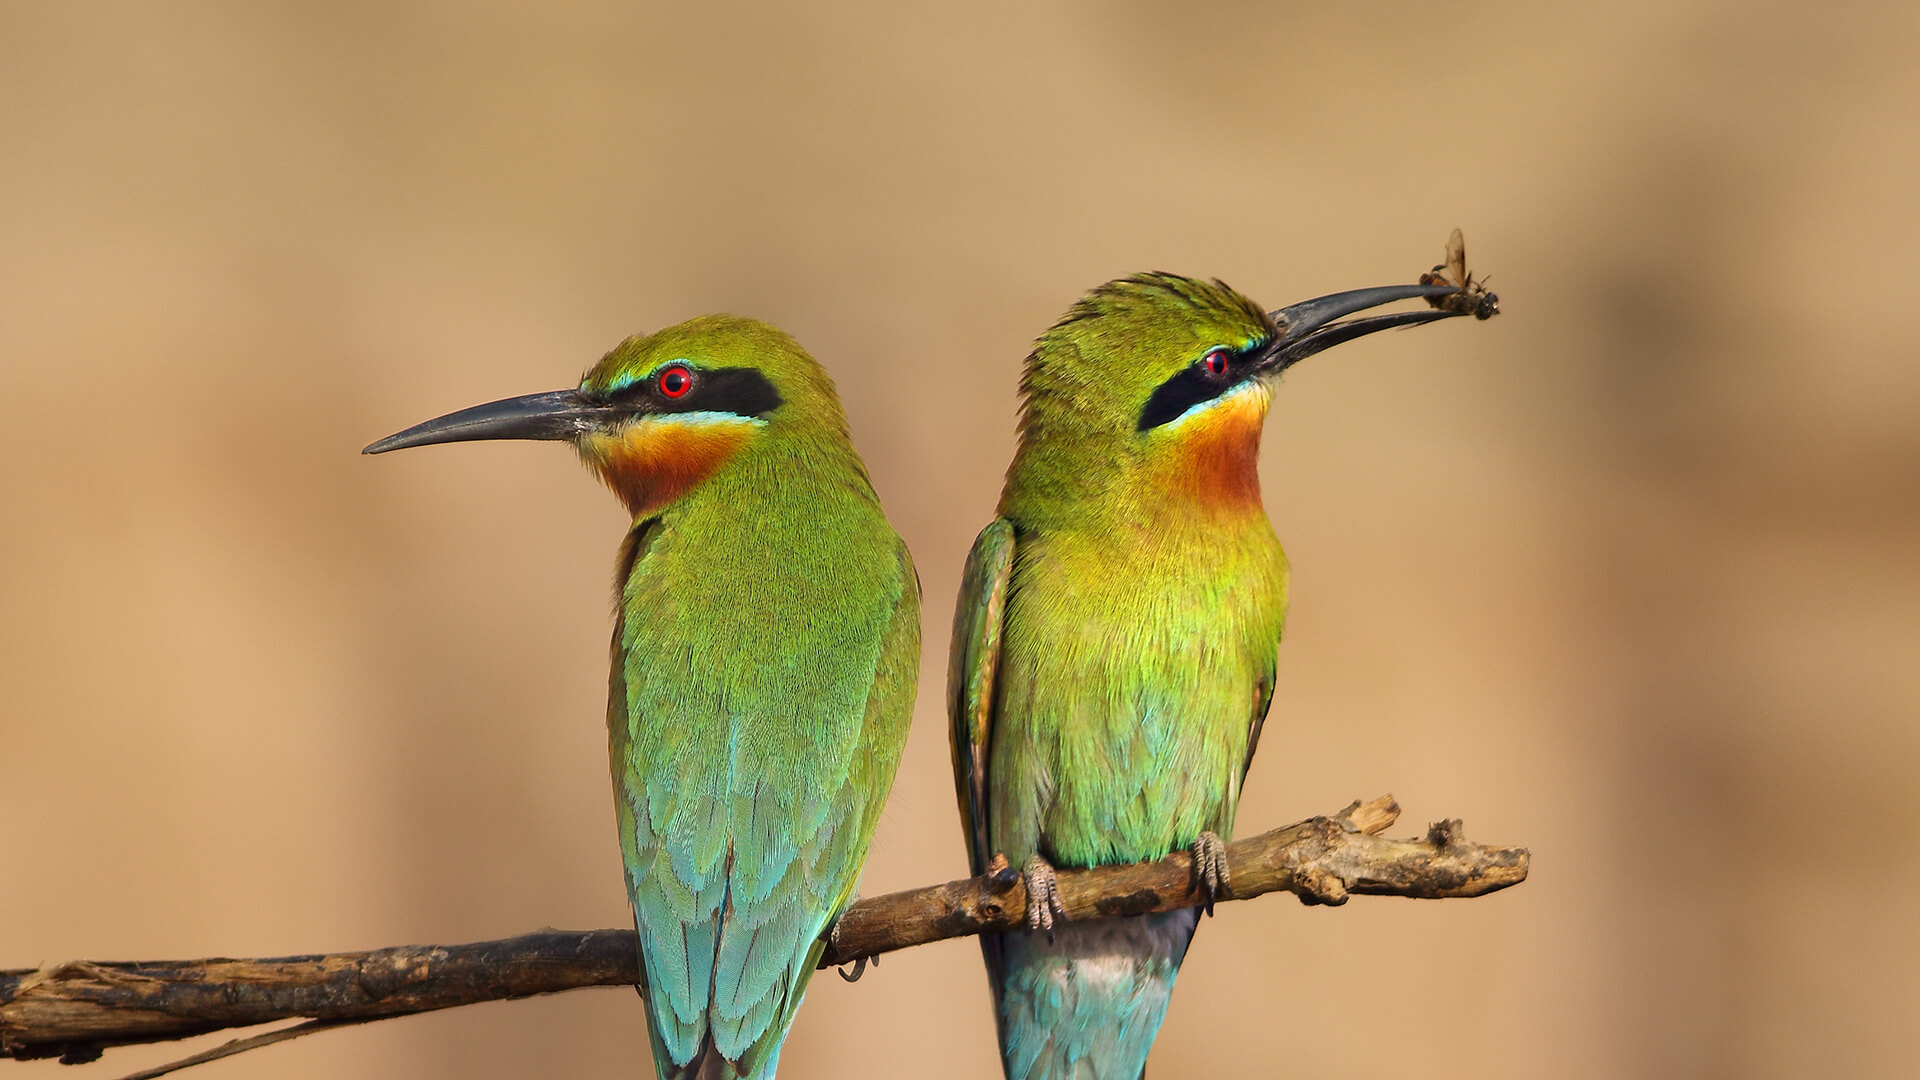 A pair of bee-eaters sitting on a branch, the right-hand bird holding a bee in its beak.